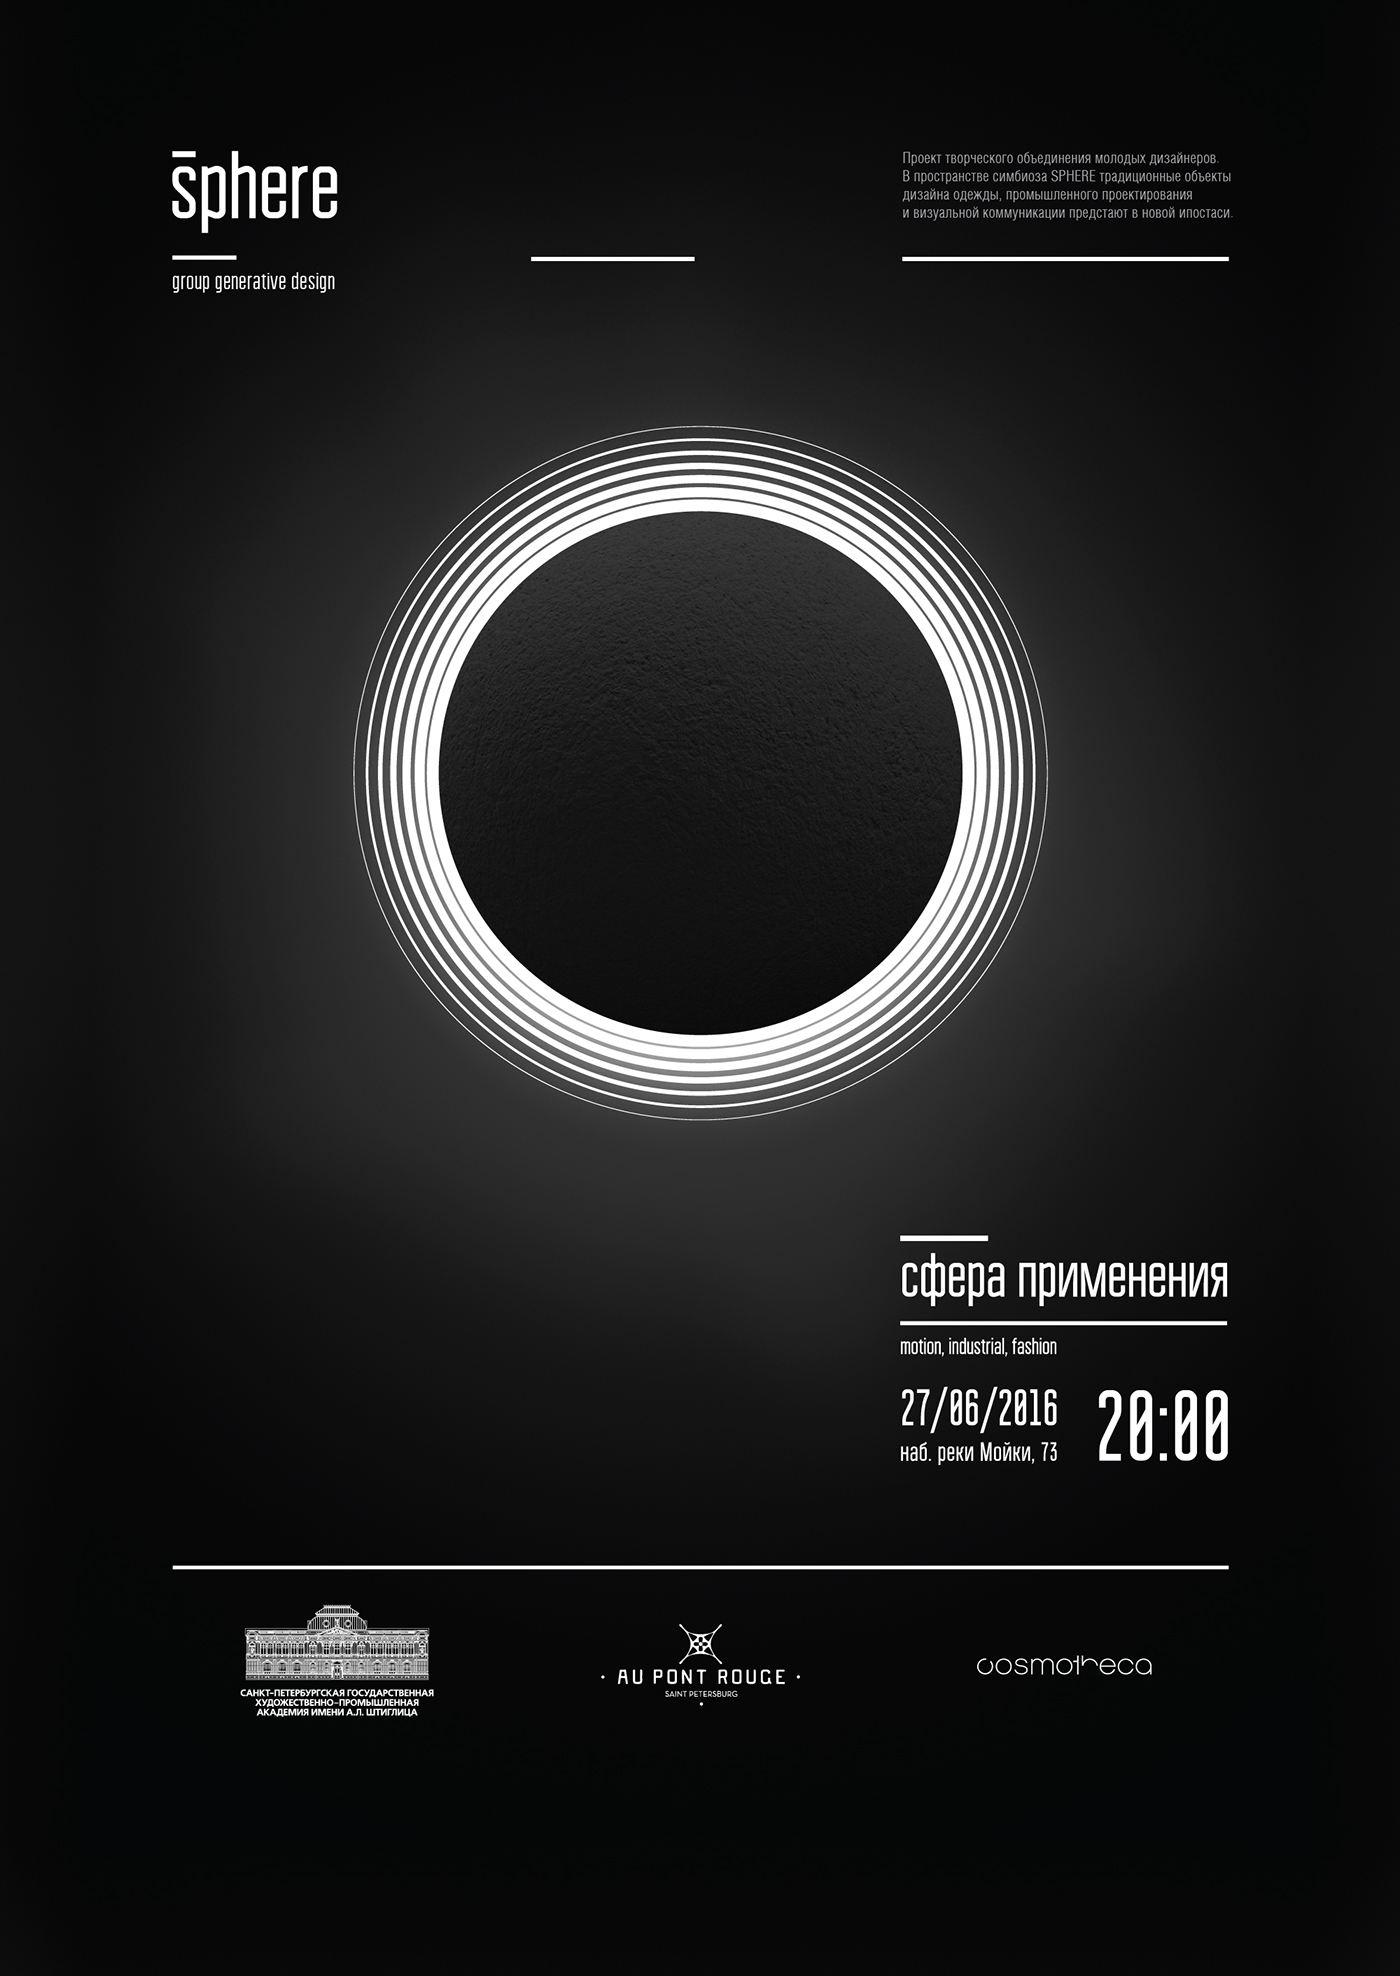 motion,interactive exhibition,light,sphere,Minimalism,media,light design,emotion,Performance,Show,action,effect,industrial